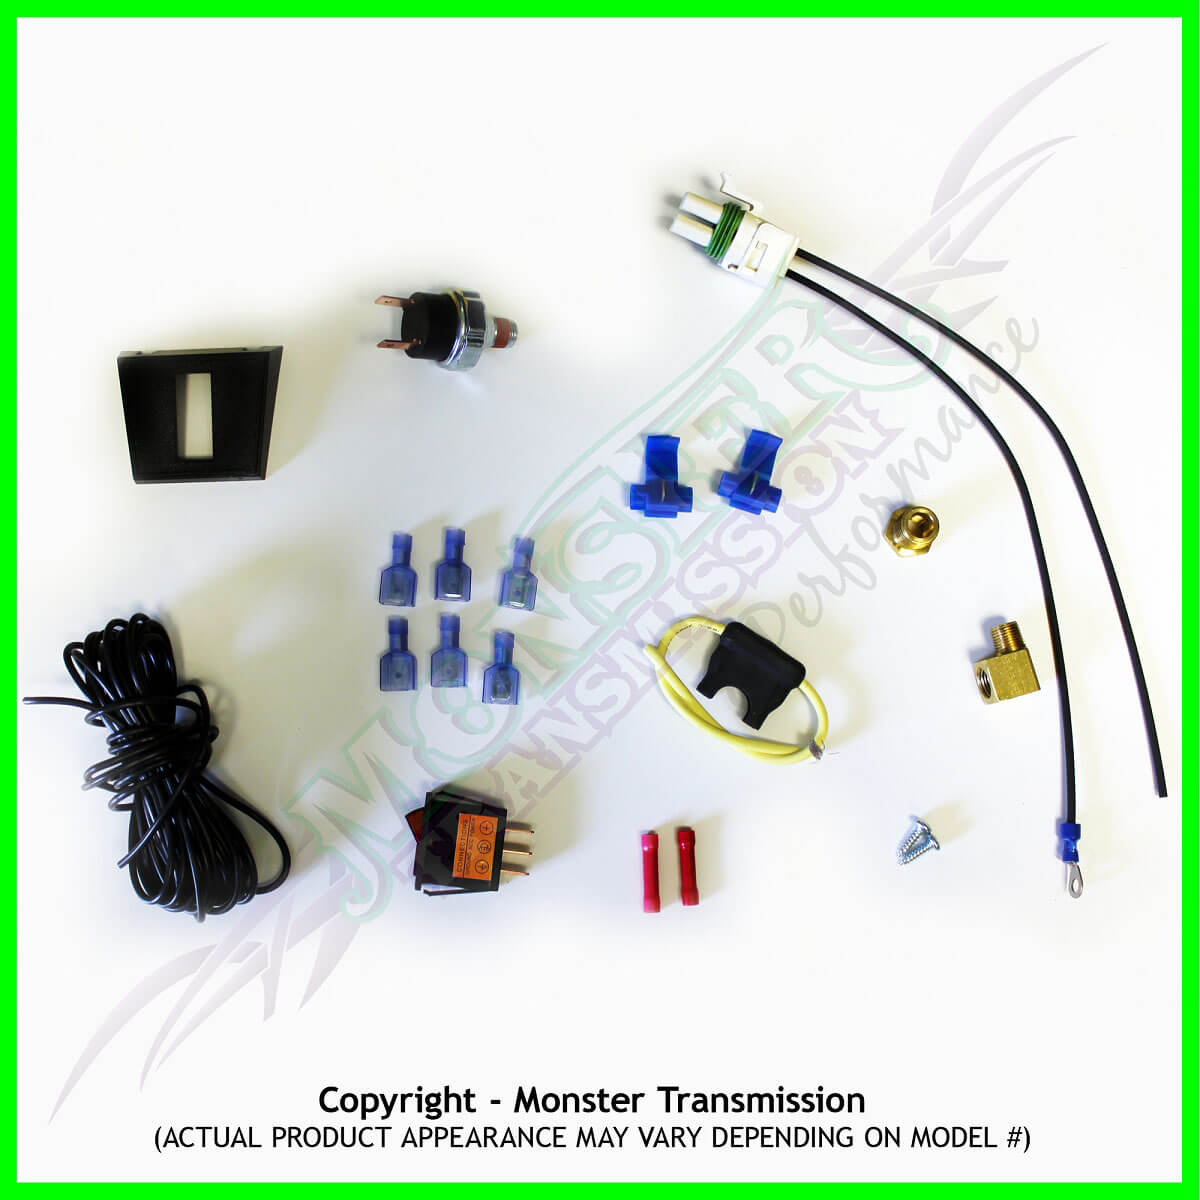 700r4 Transmission Lock Up Wiring Bookmark About Diagram Lockup For Plug External Kit Rh Monstertransmission Com Harness